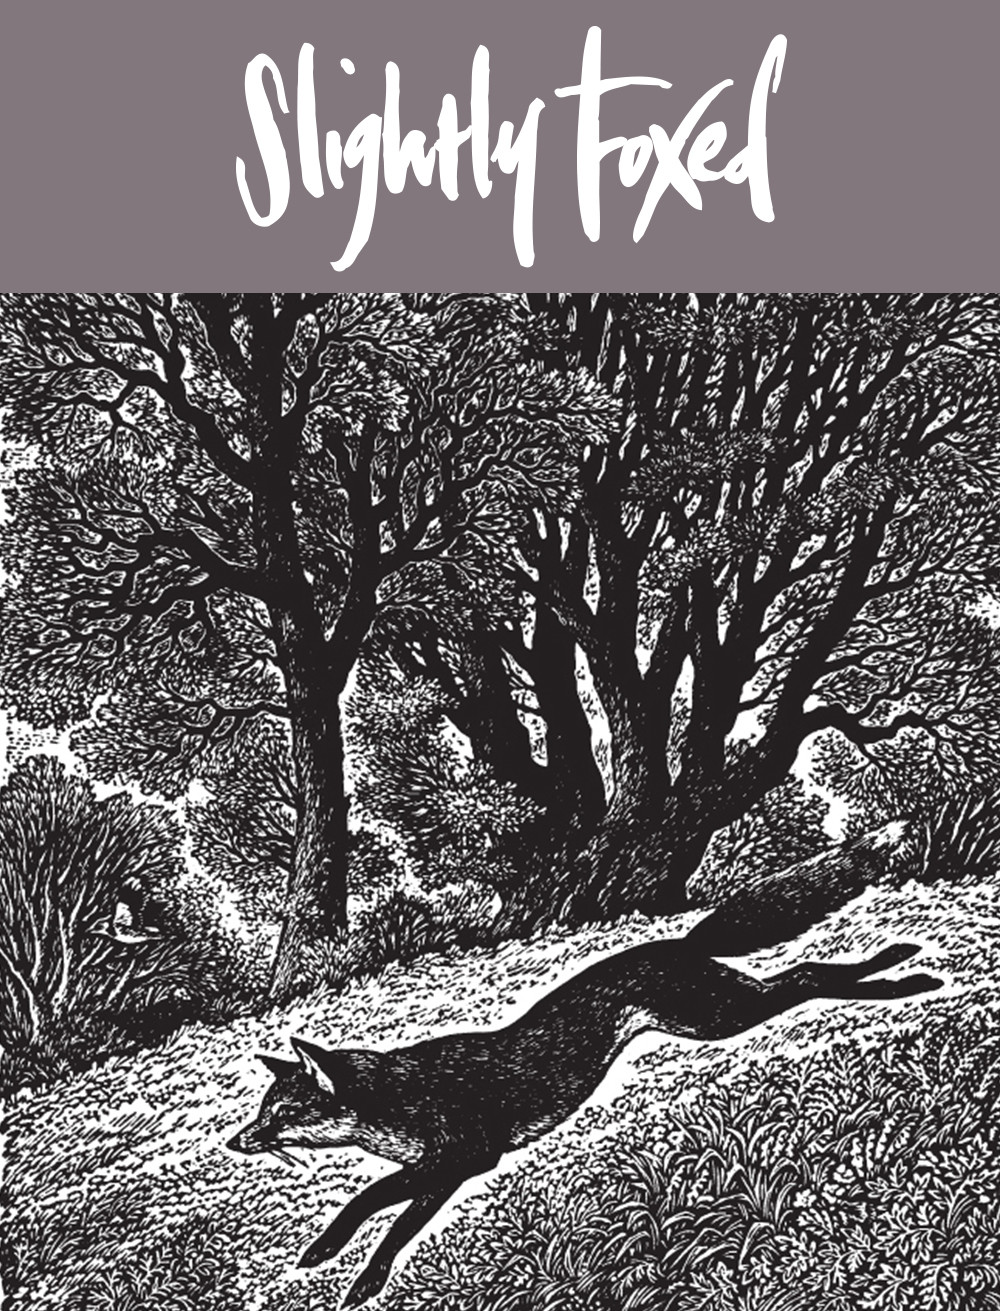 Slightly Foxed August News: The last days of summer